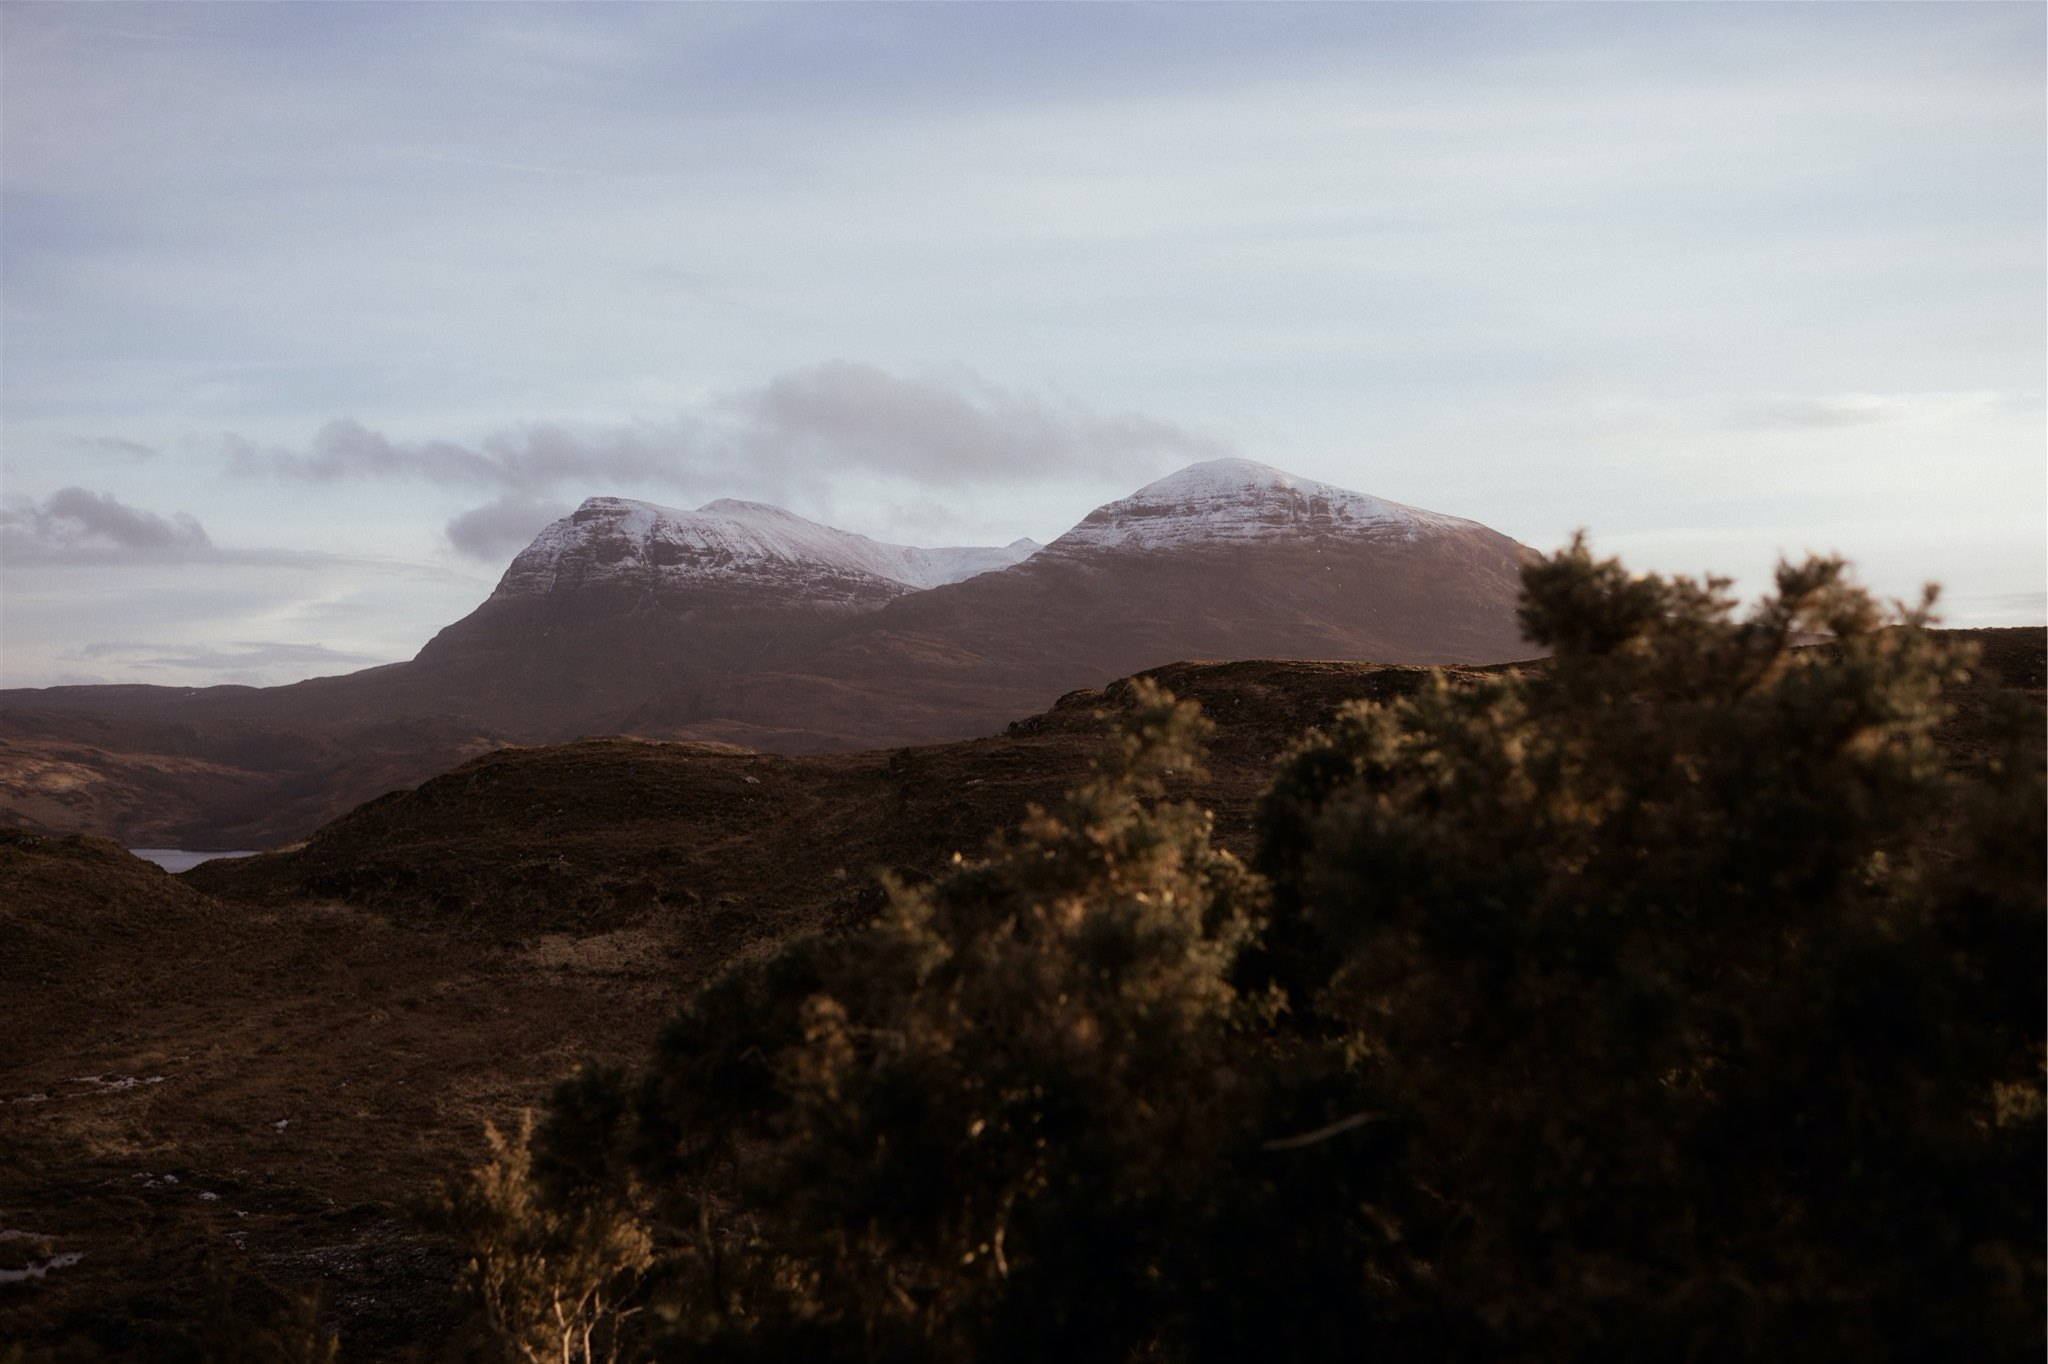 Landscape shots of snow-covered mountains in Assynt, Scotland